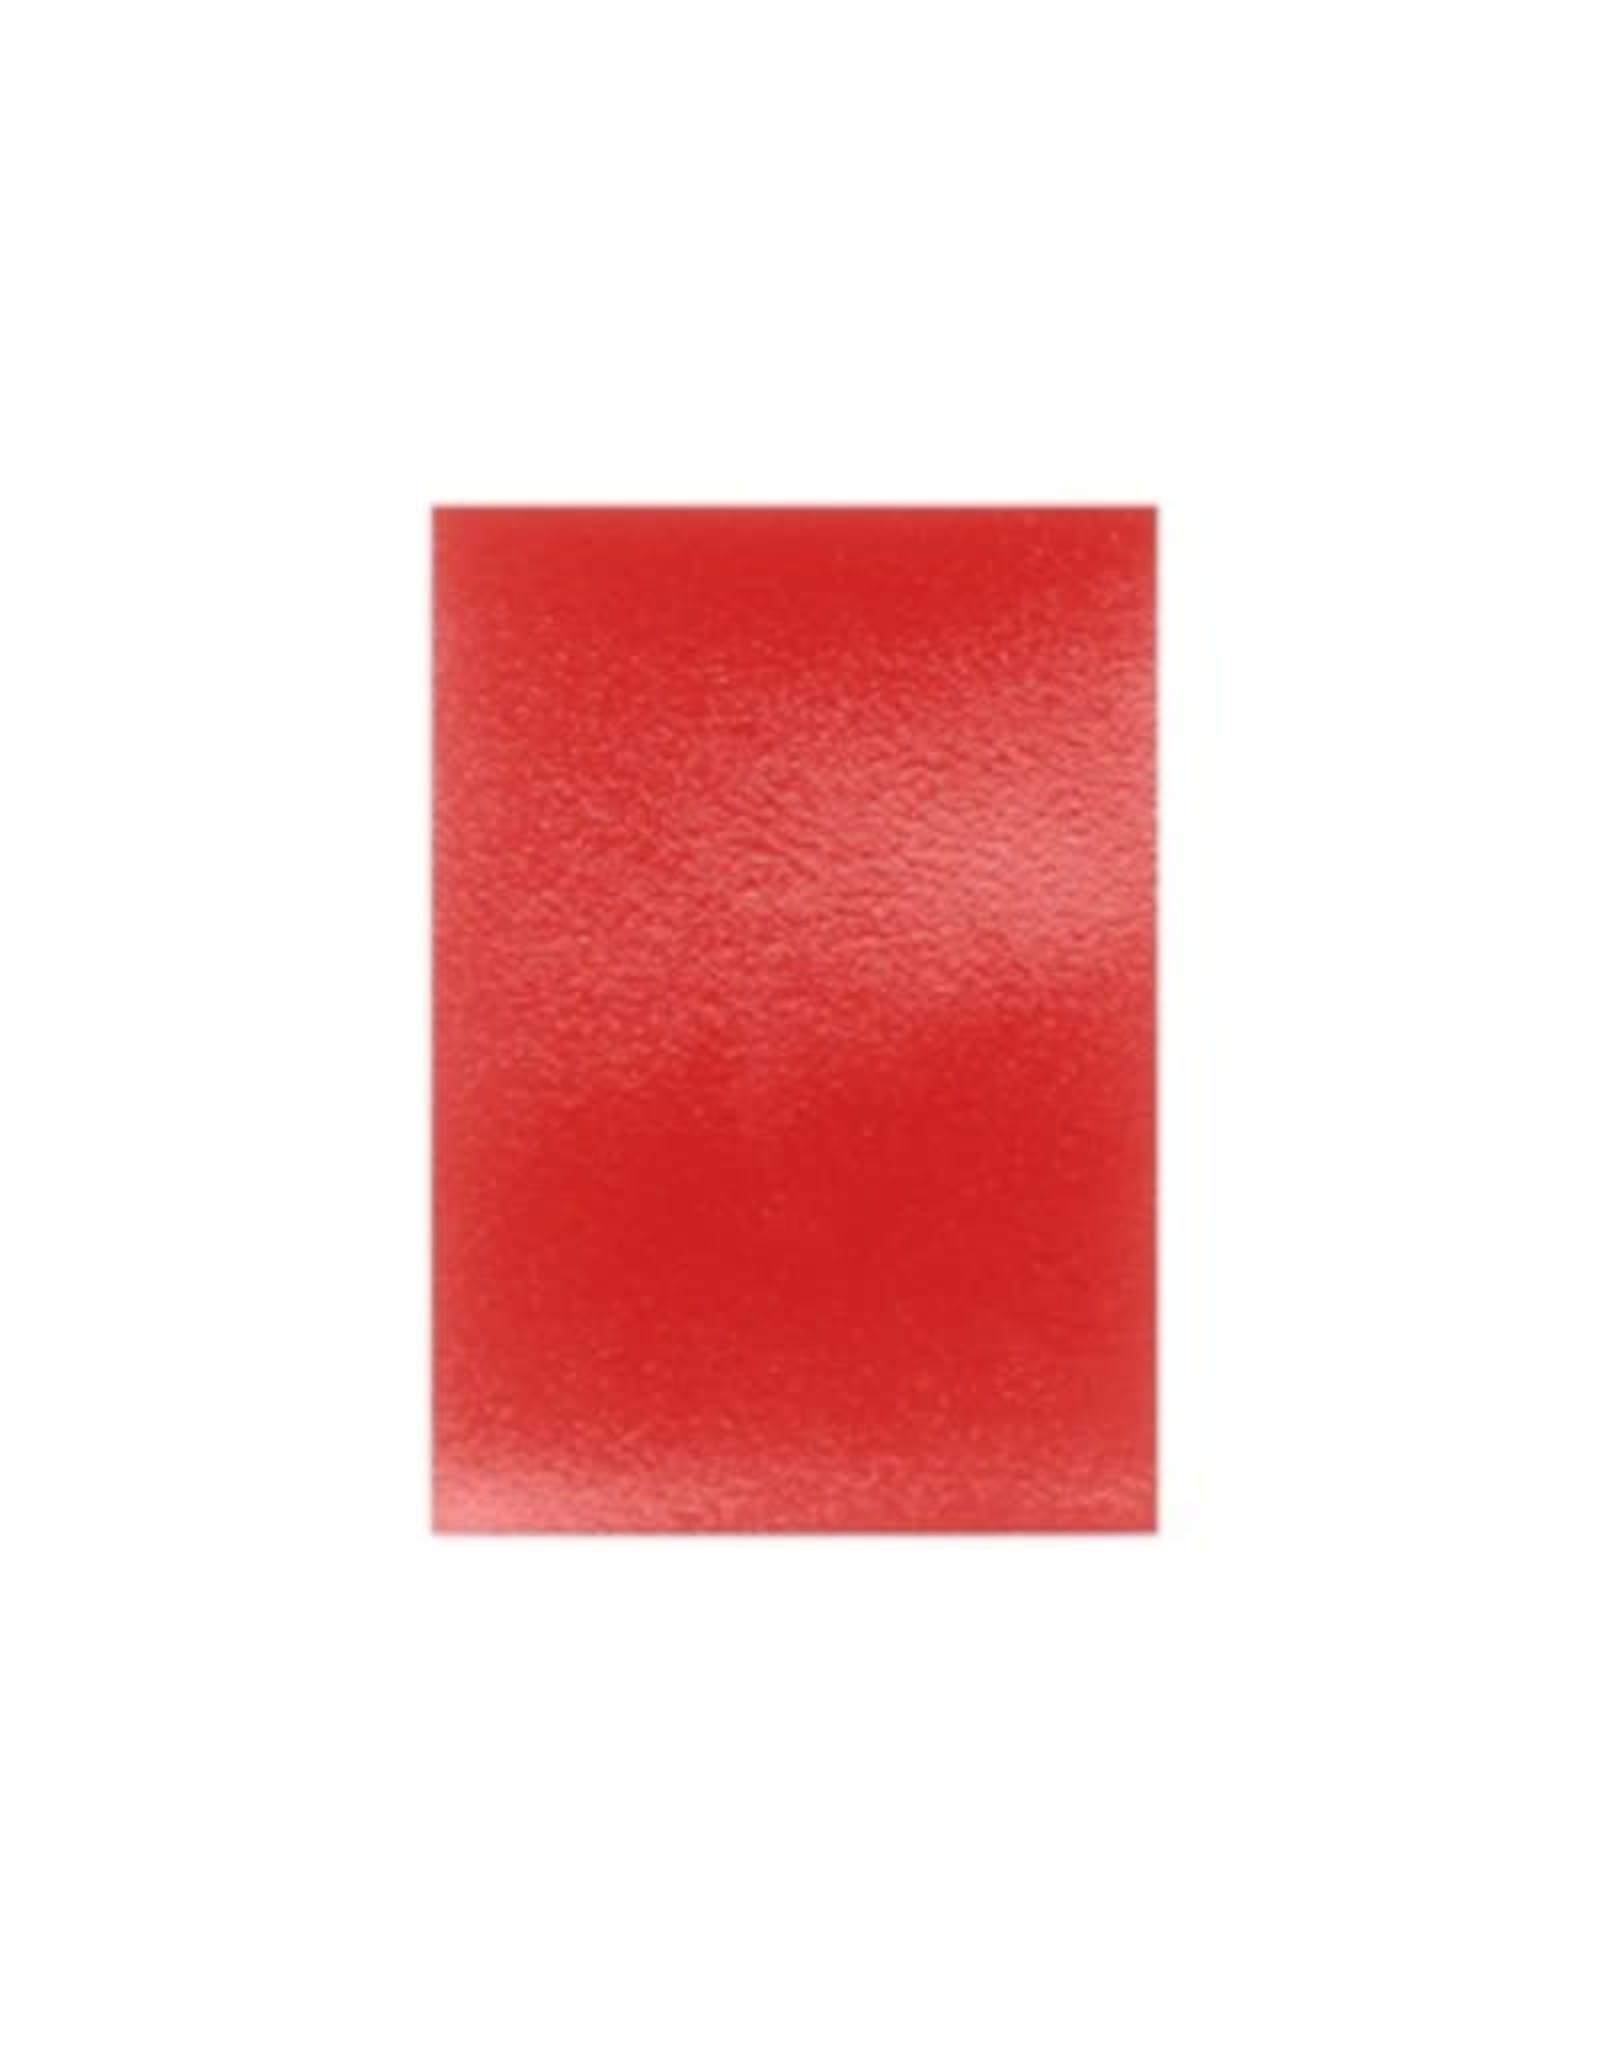 Dex Protection Sleeves: Yu-Gi-Oh Size (60) Red